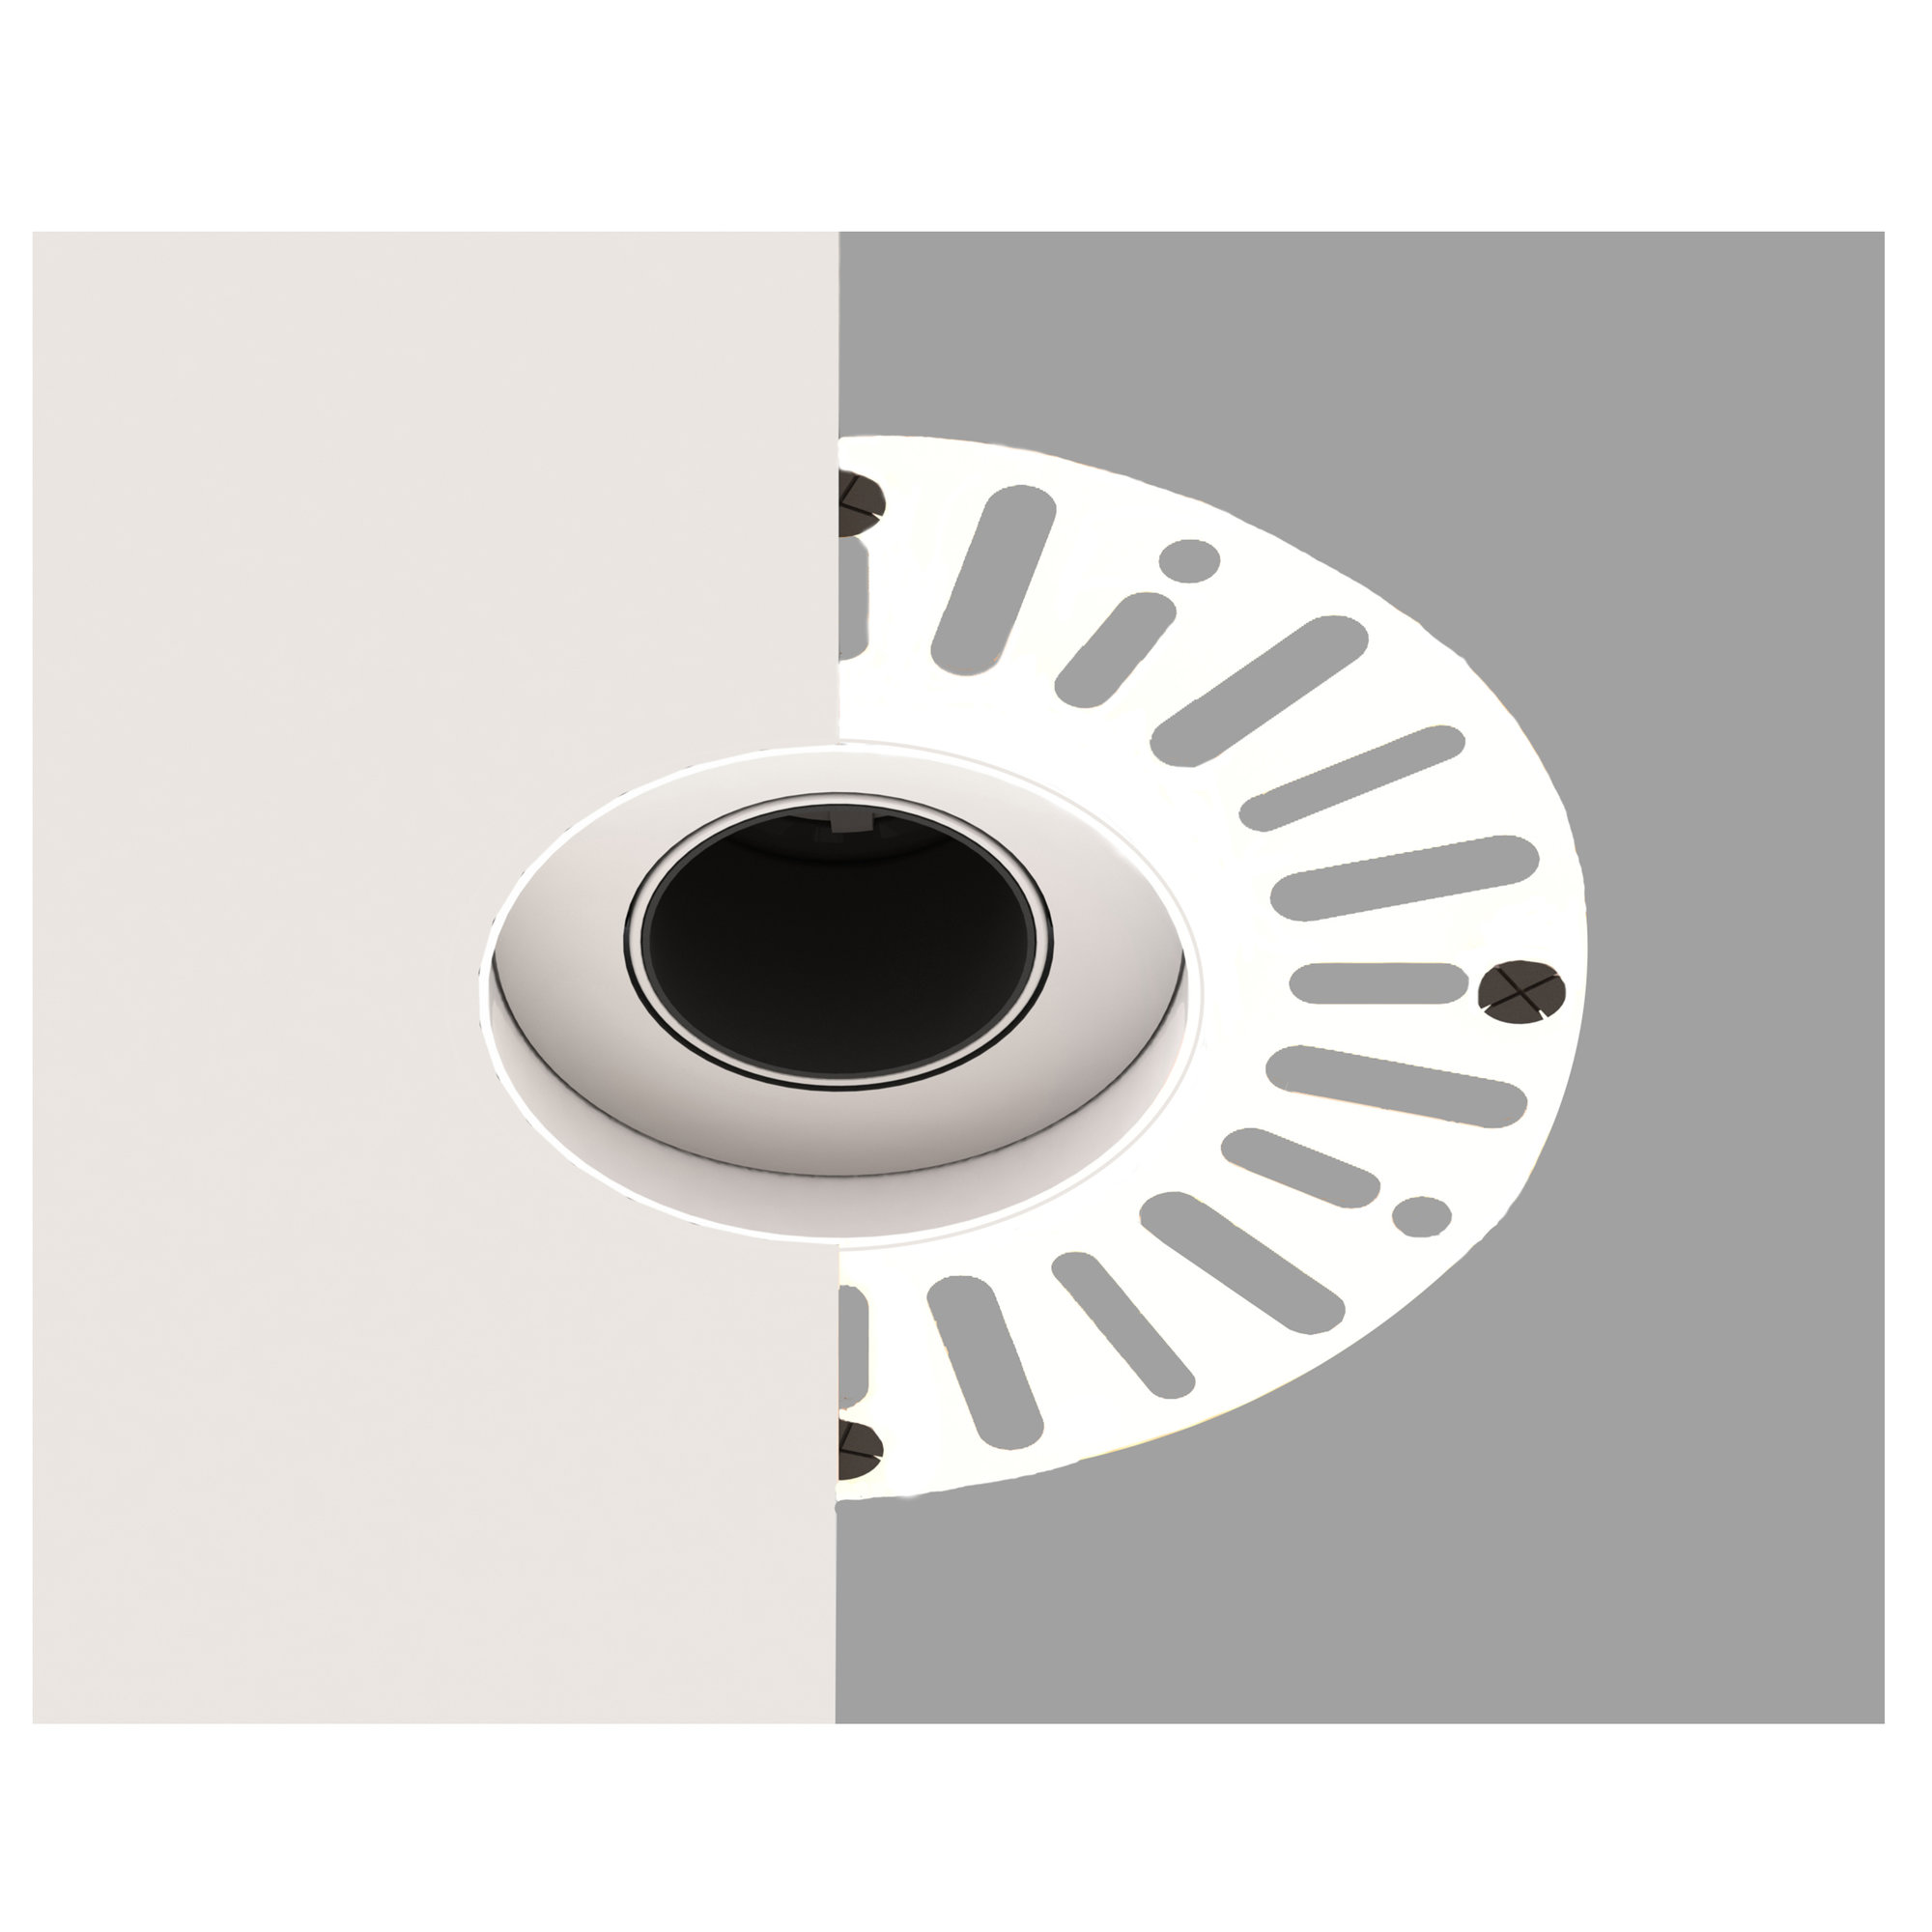 Plaster-in Recessed Downlight Accessory